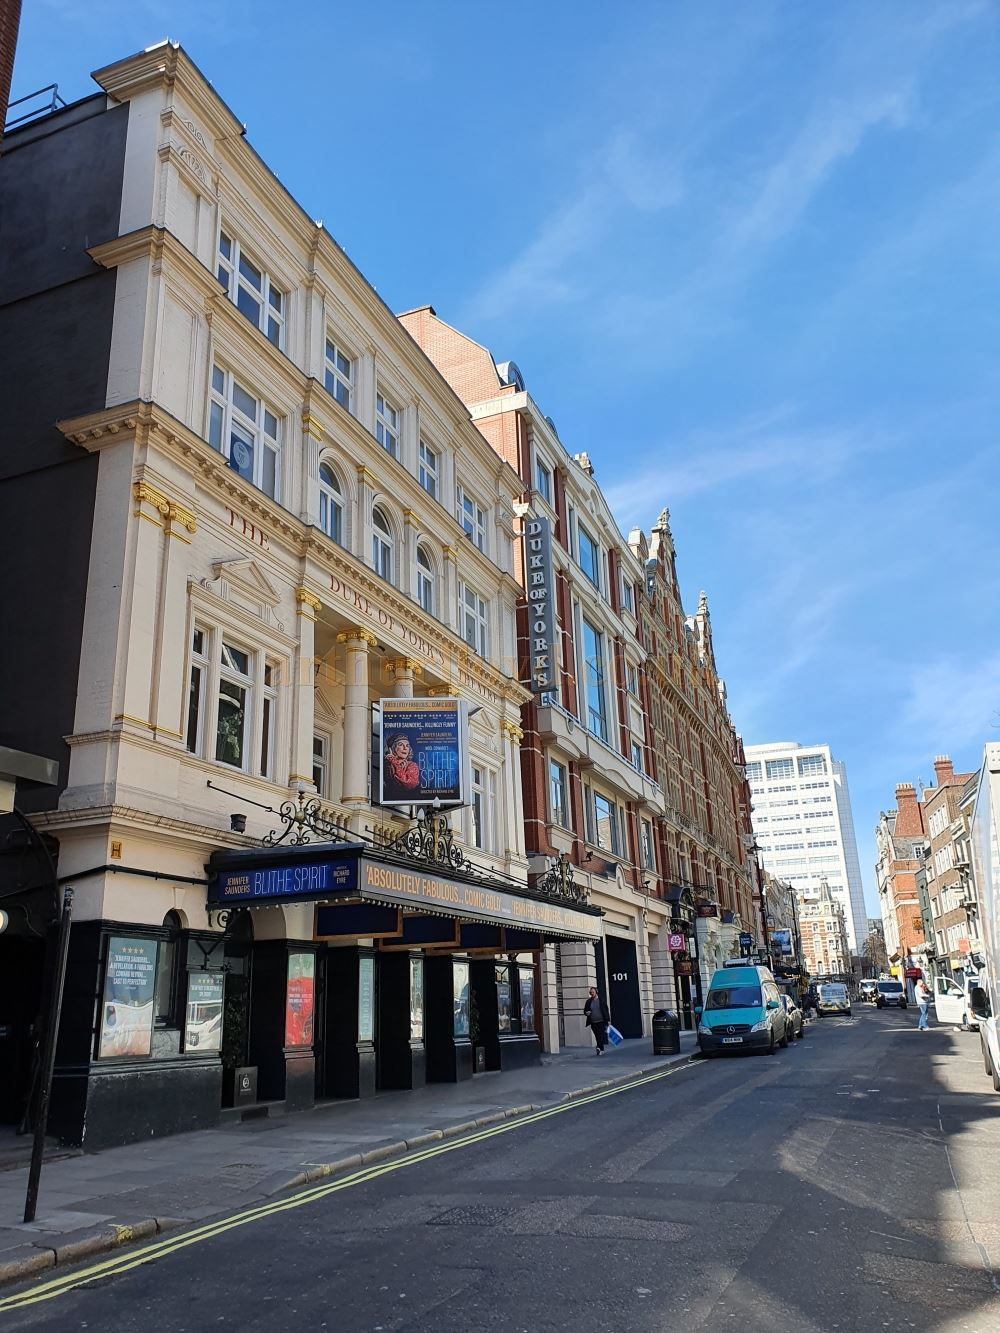 The Duke of York's Theatre on an almost deserted St. Martin's Lane which is normally full of traffic and people - on March the 23rd 2020 during the Coronavirus Pandemic - Photo M.L.